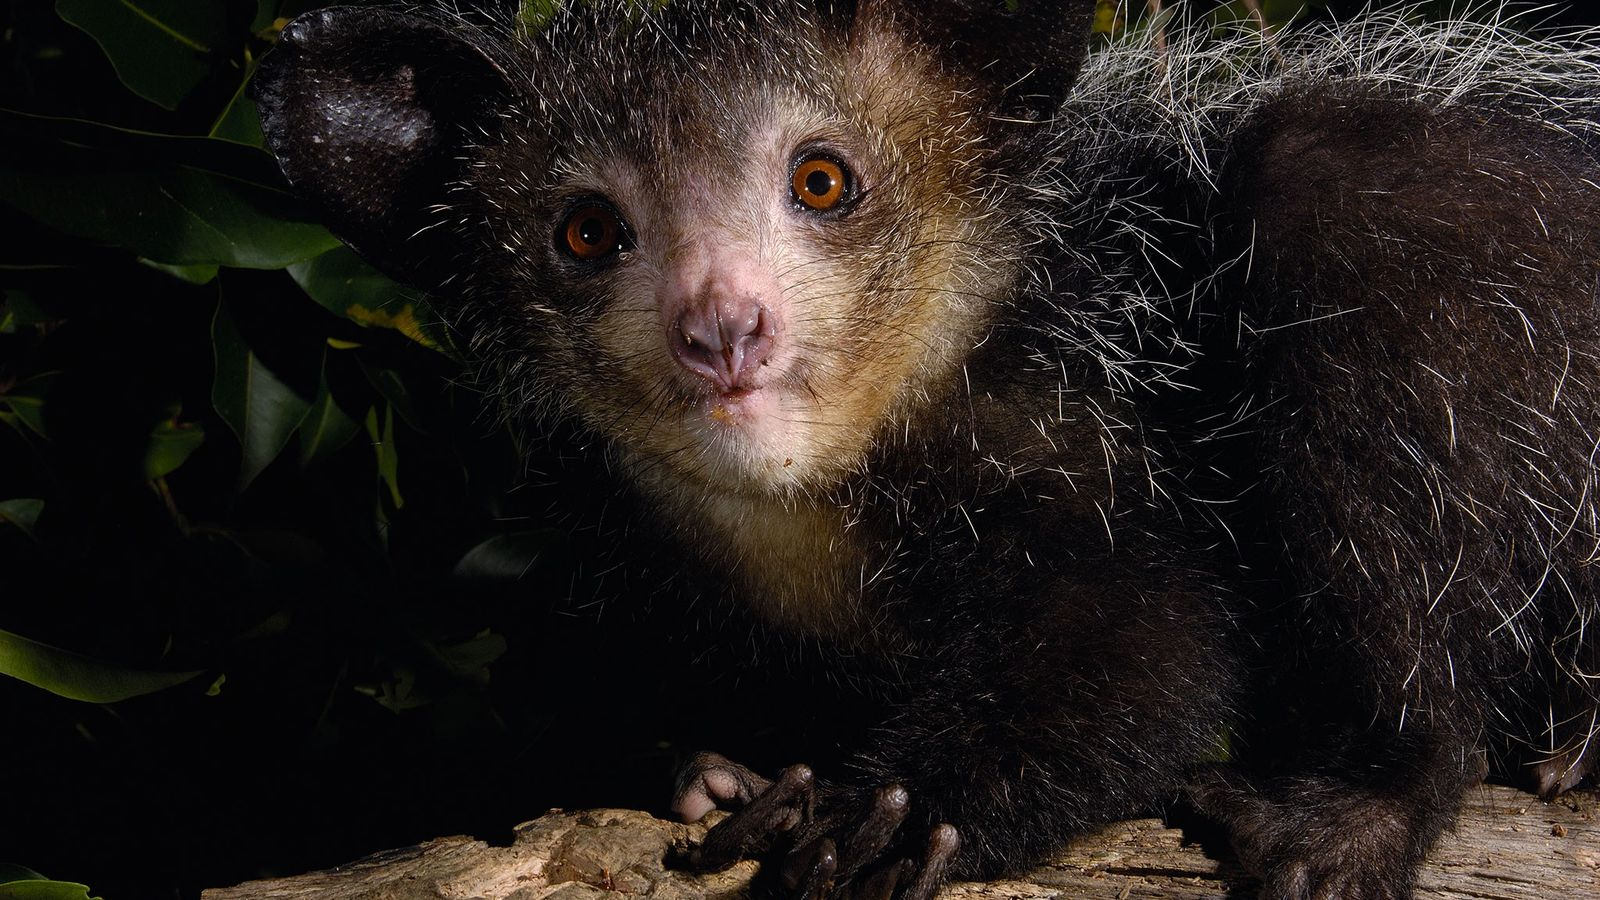 Aye-ayes have a mishmash of peculiar features, such as huge ears, bushy tails, rodent-like teeth, and ...